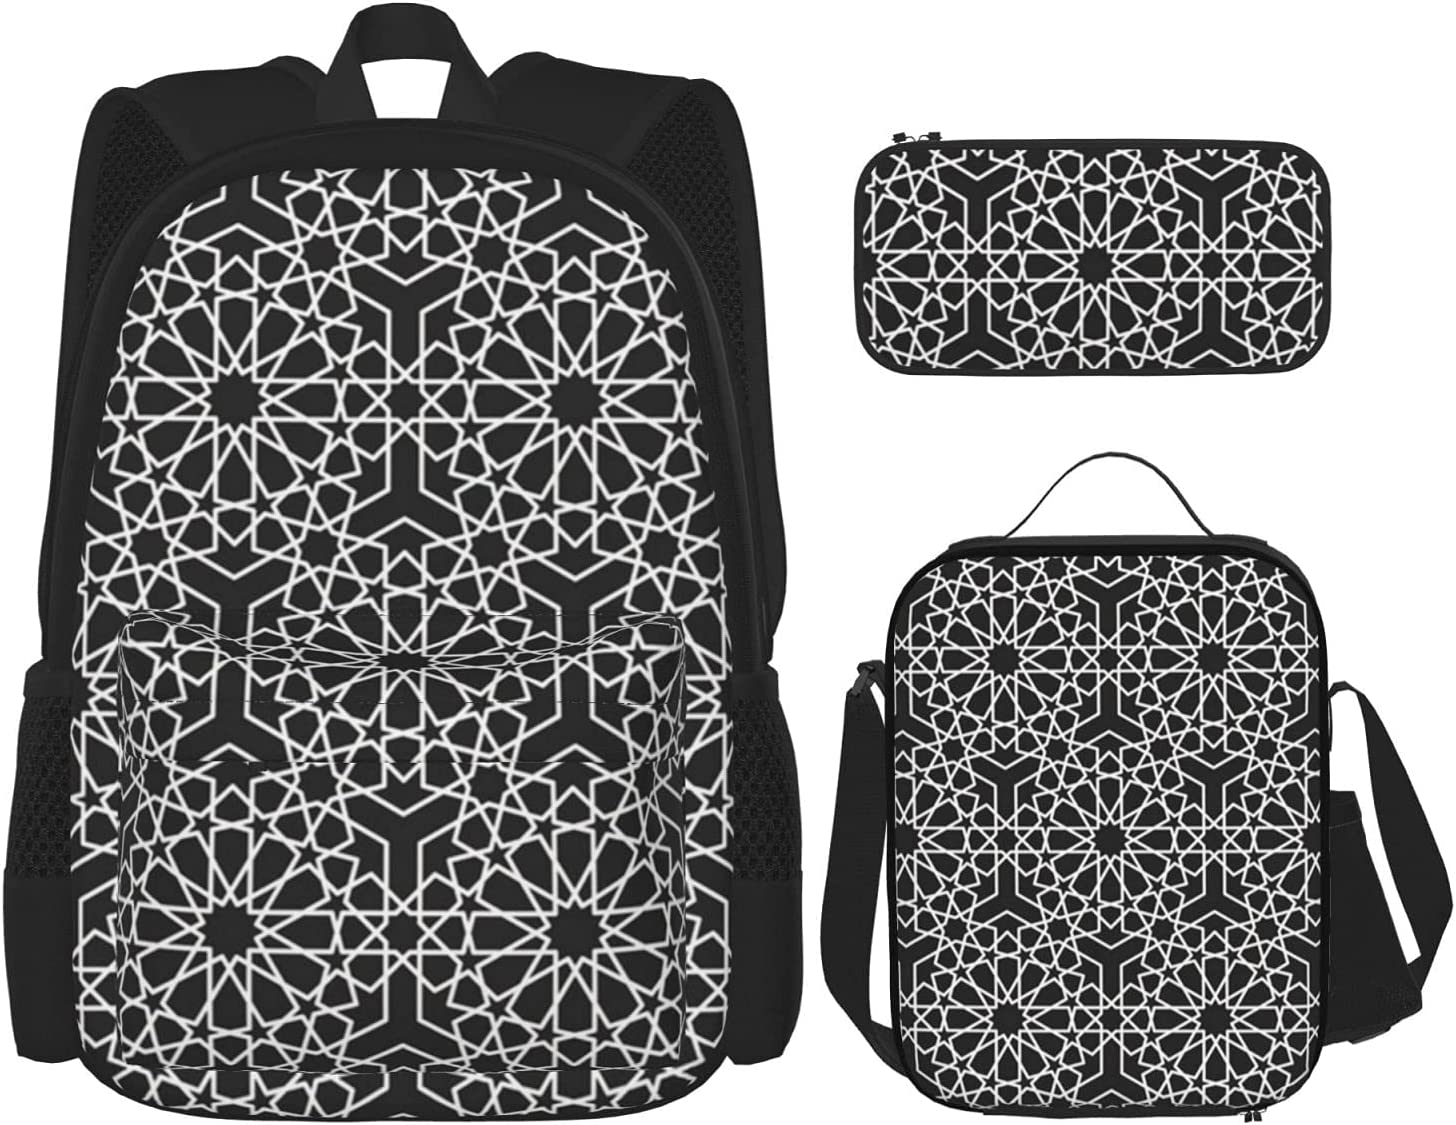 Backpack Bags Simple Islamic safety Geometric Lunch with Pattern Easy-to-use Bag Ba